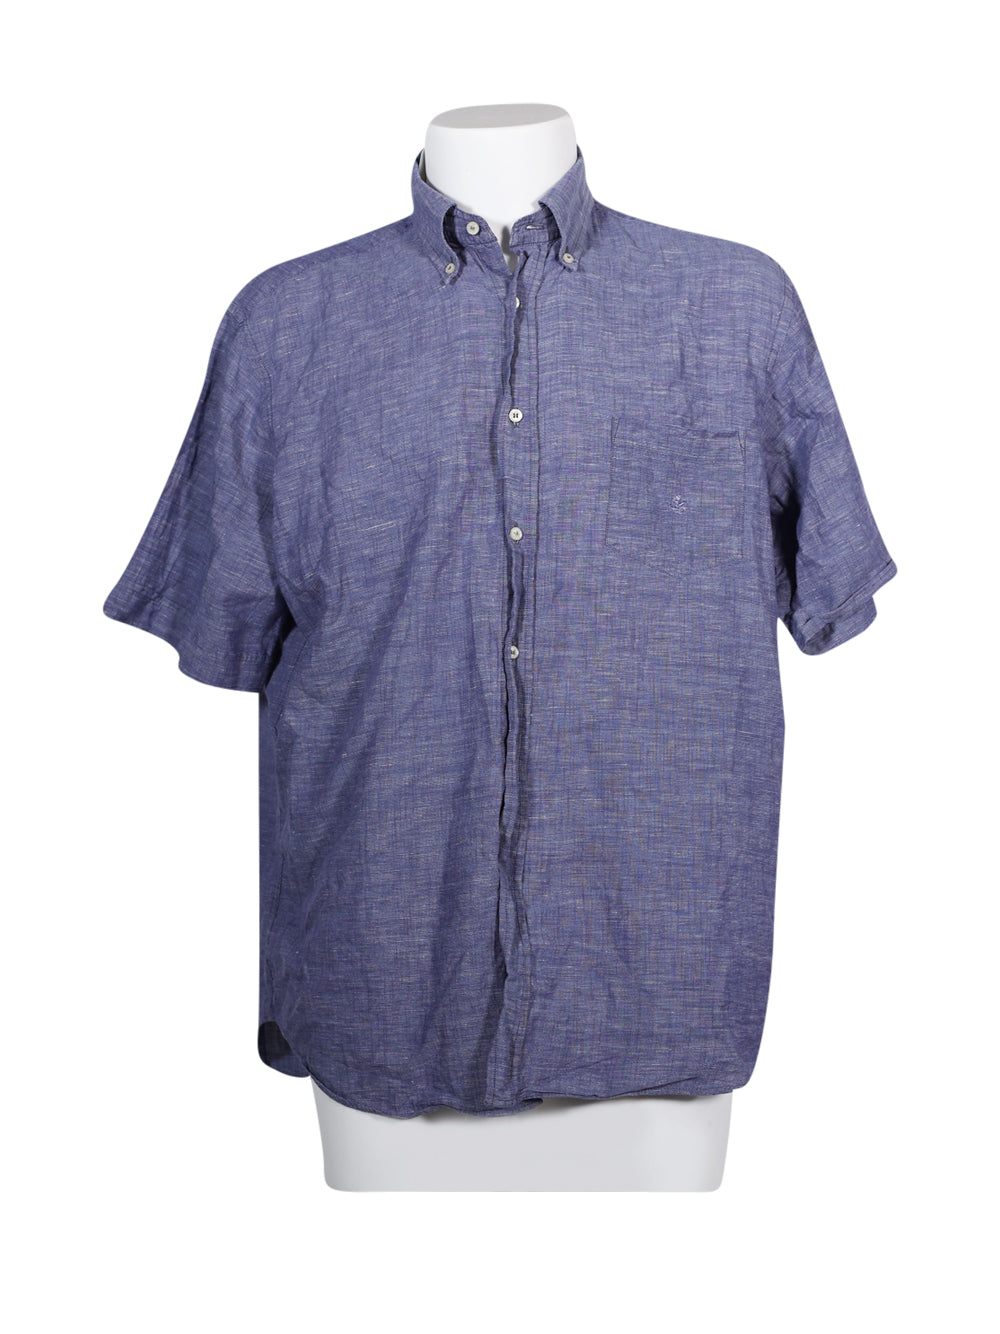 Front photo of Preloved Brooksfield Blue Man's shirt - size 38/M